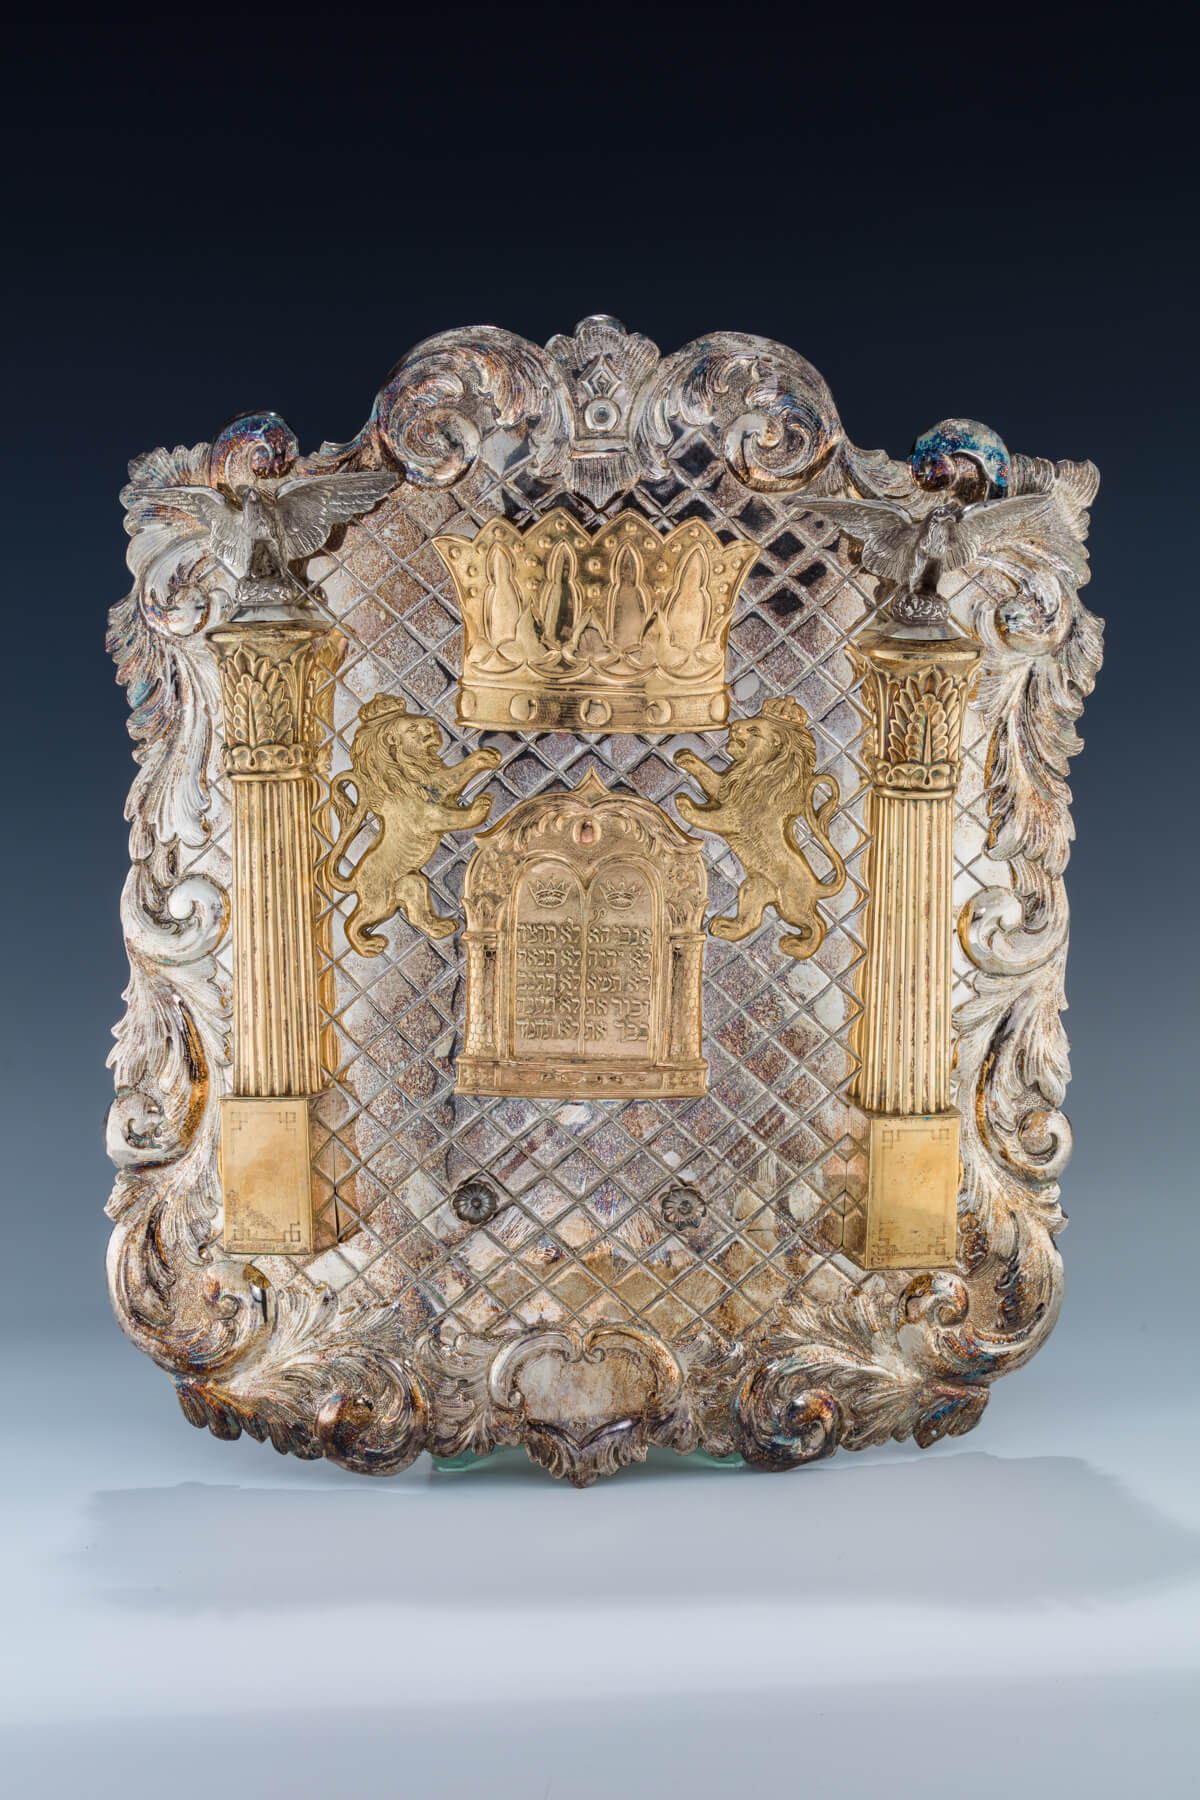 36. A Large Silver Torah Shield